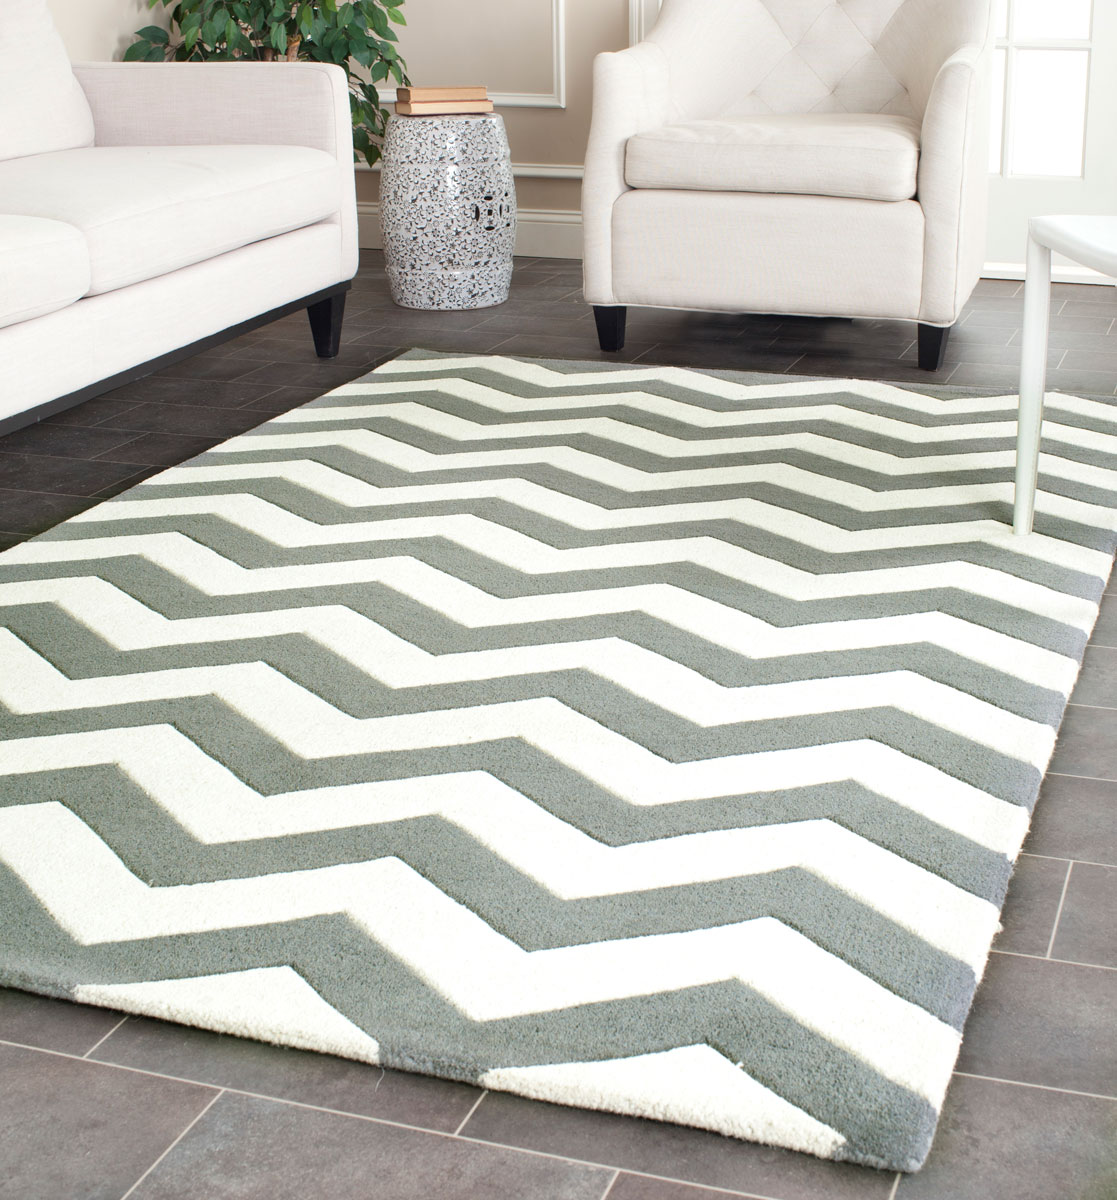 safavieh x rugs courtyard outdoor ft p area sand black rug indoor